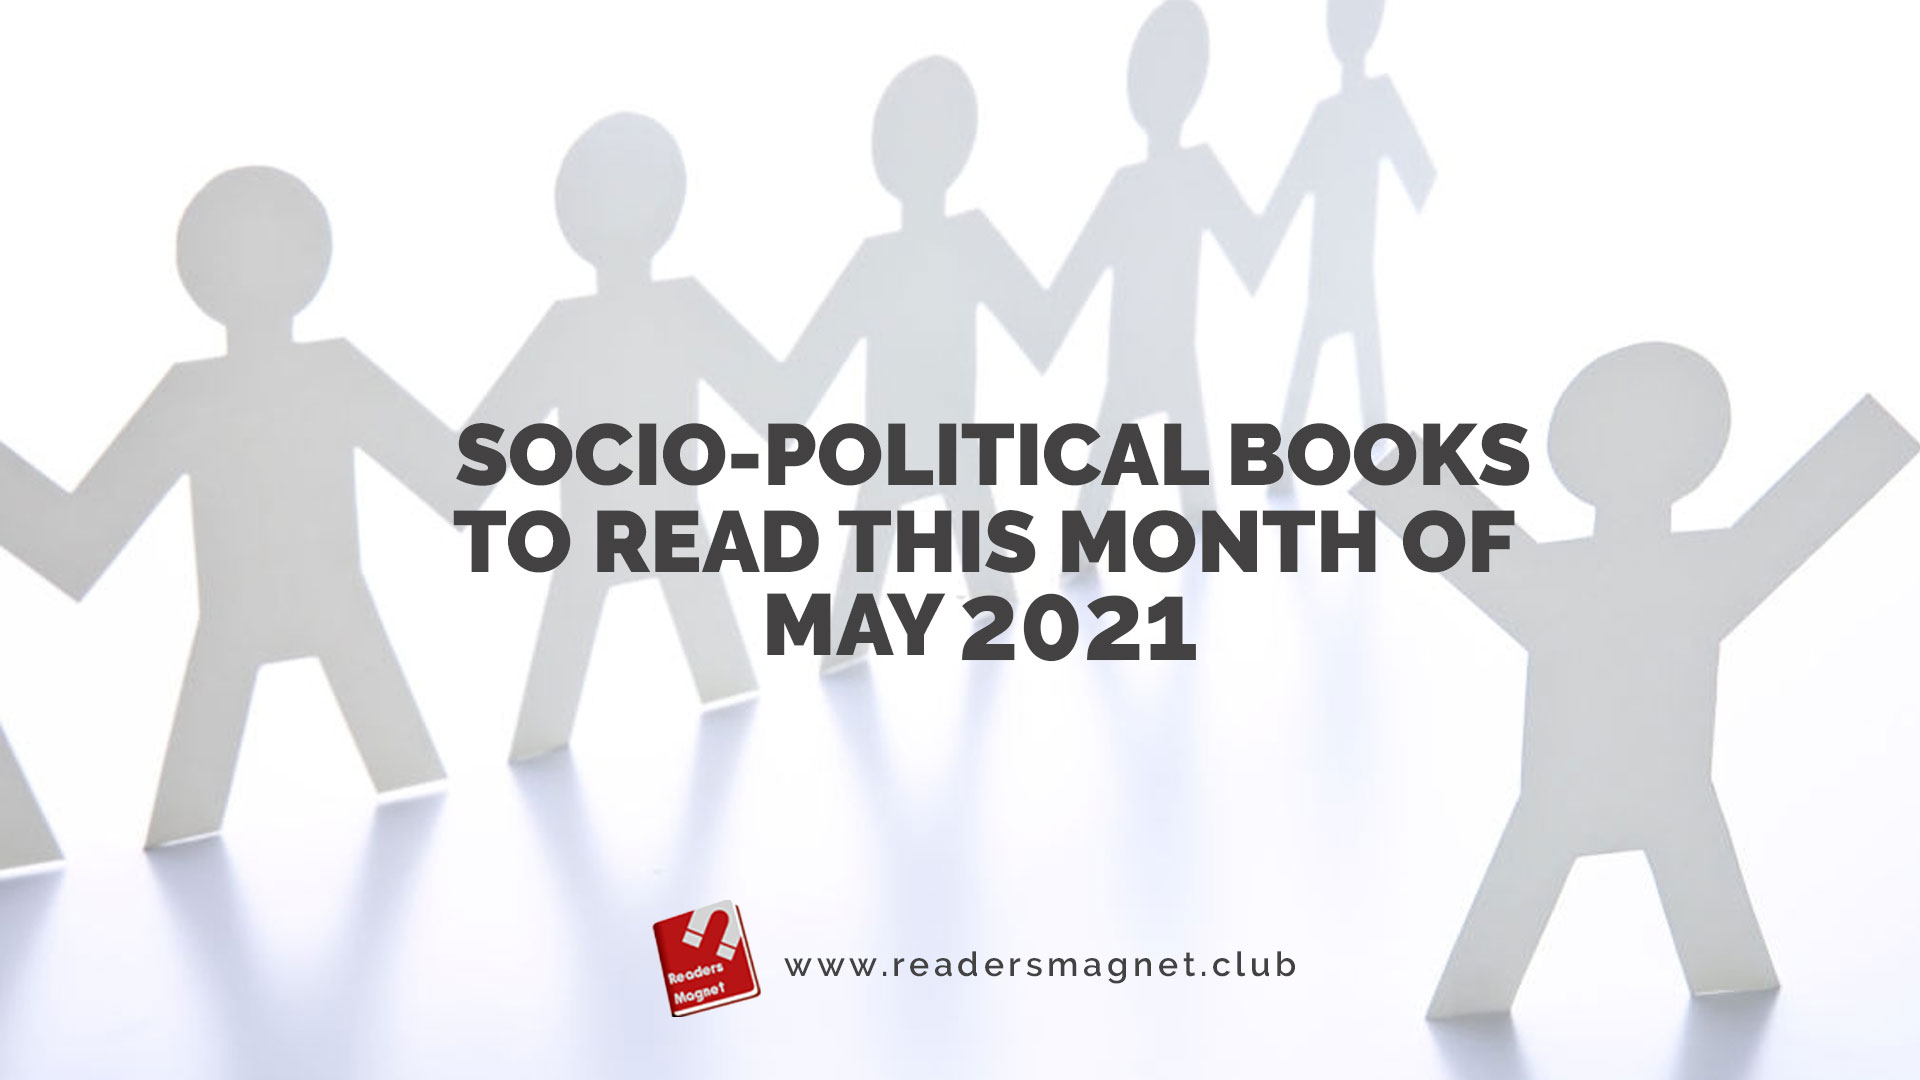 Socio-Political-Books-to-Read-this-Month-of-May-2021 banner